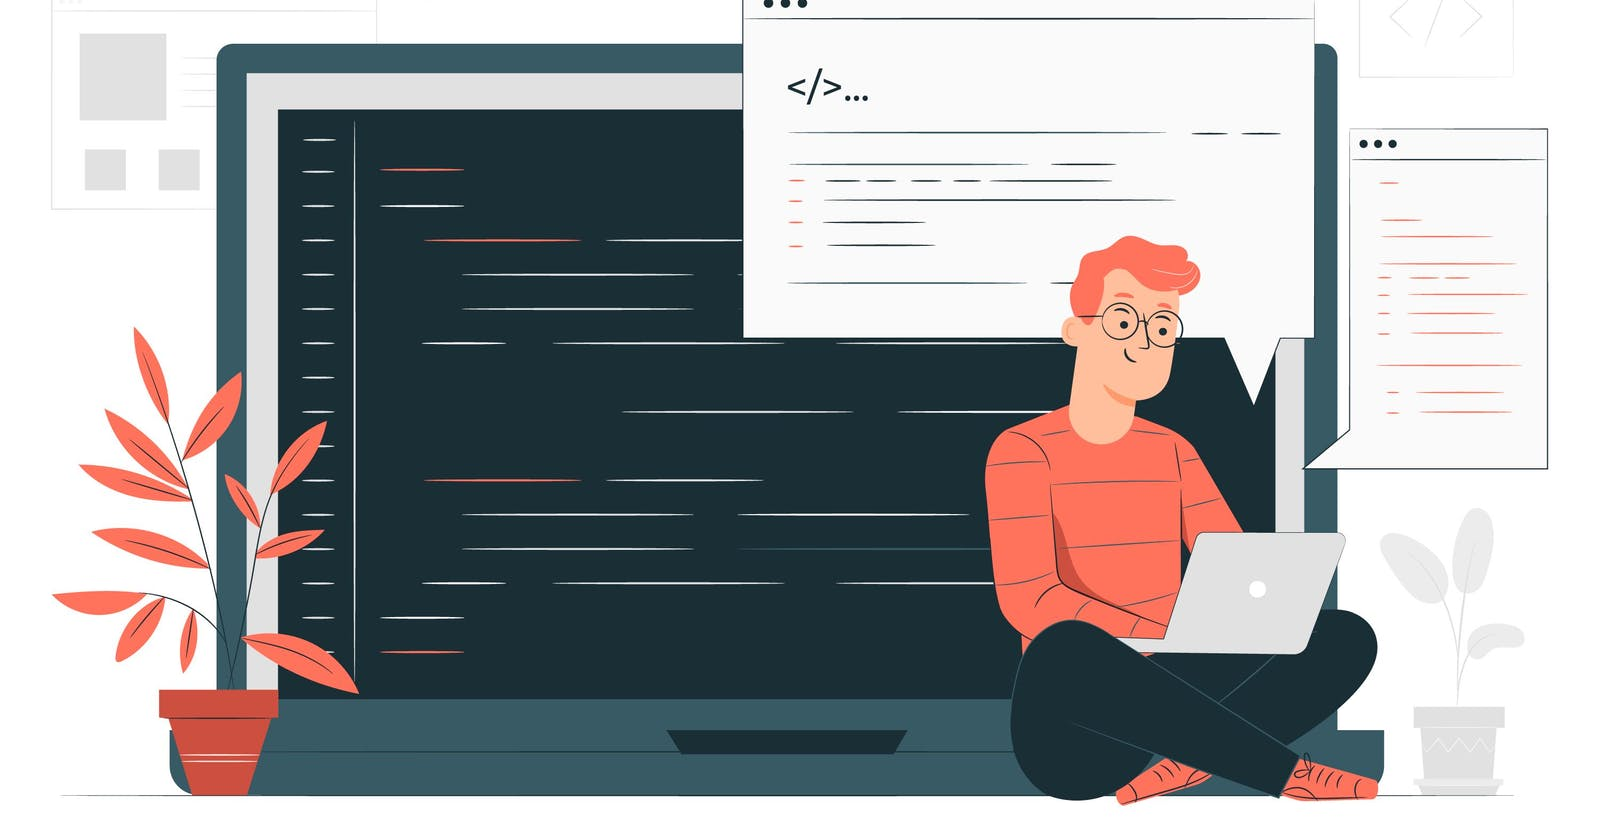 Best Text Editor For Programming